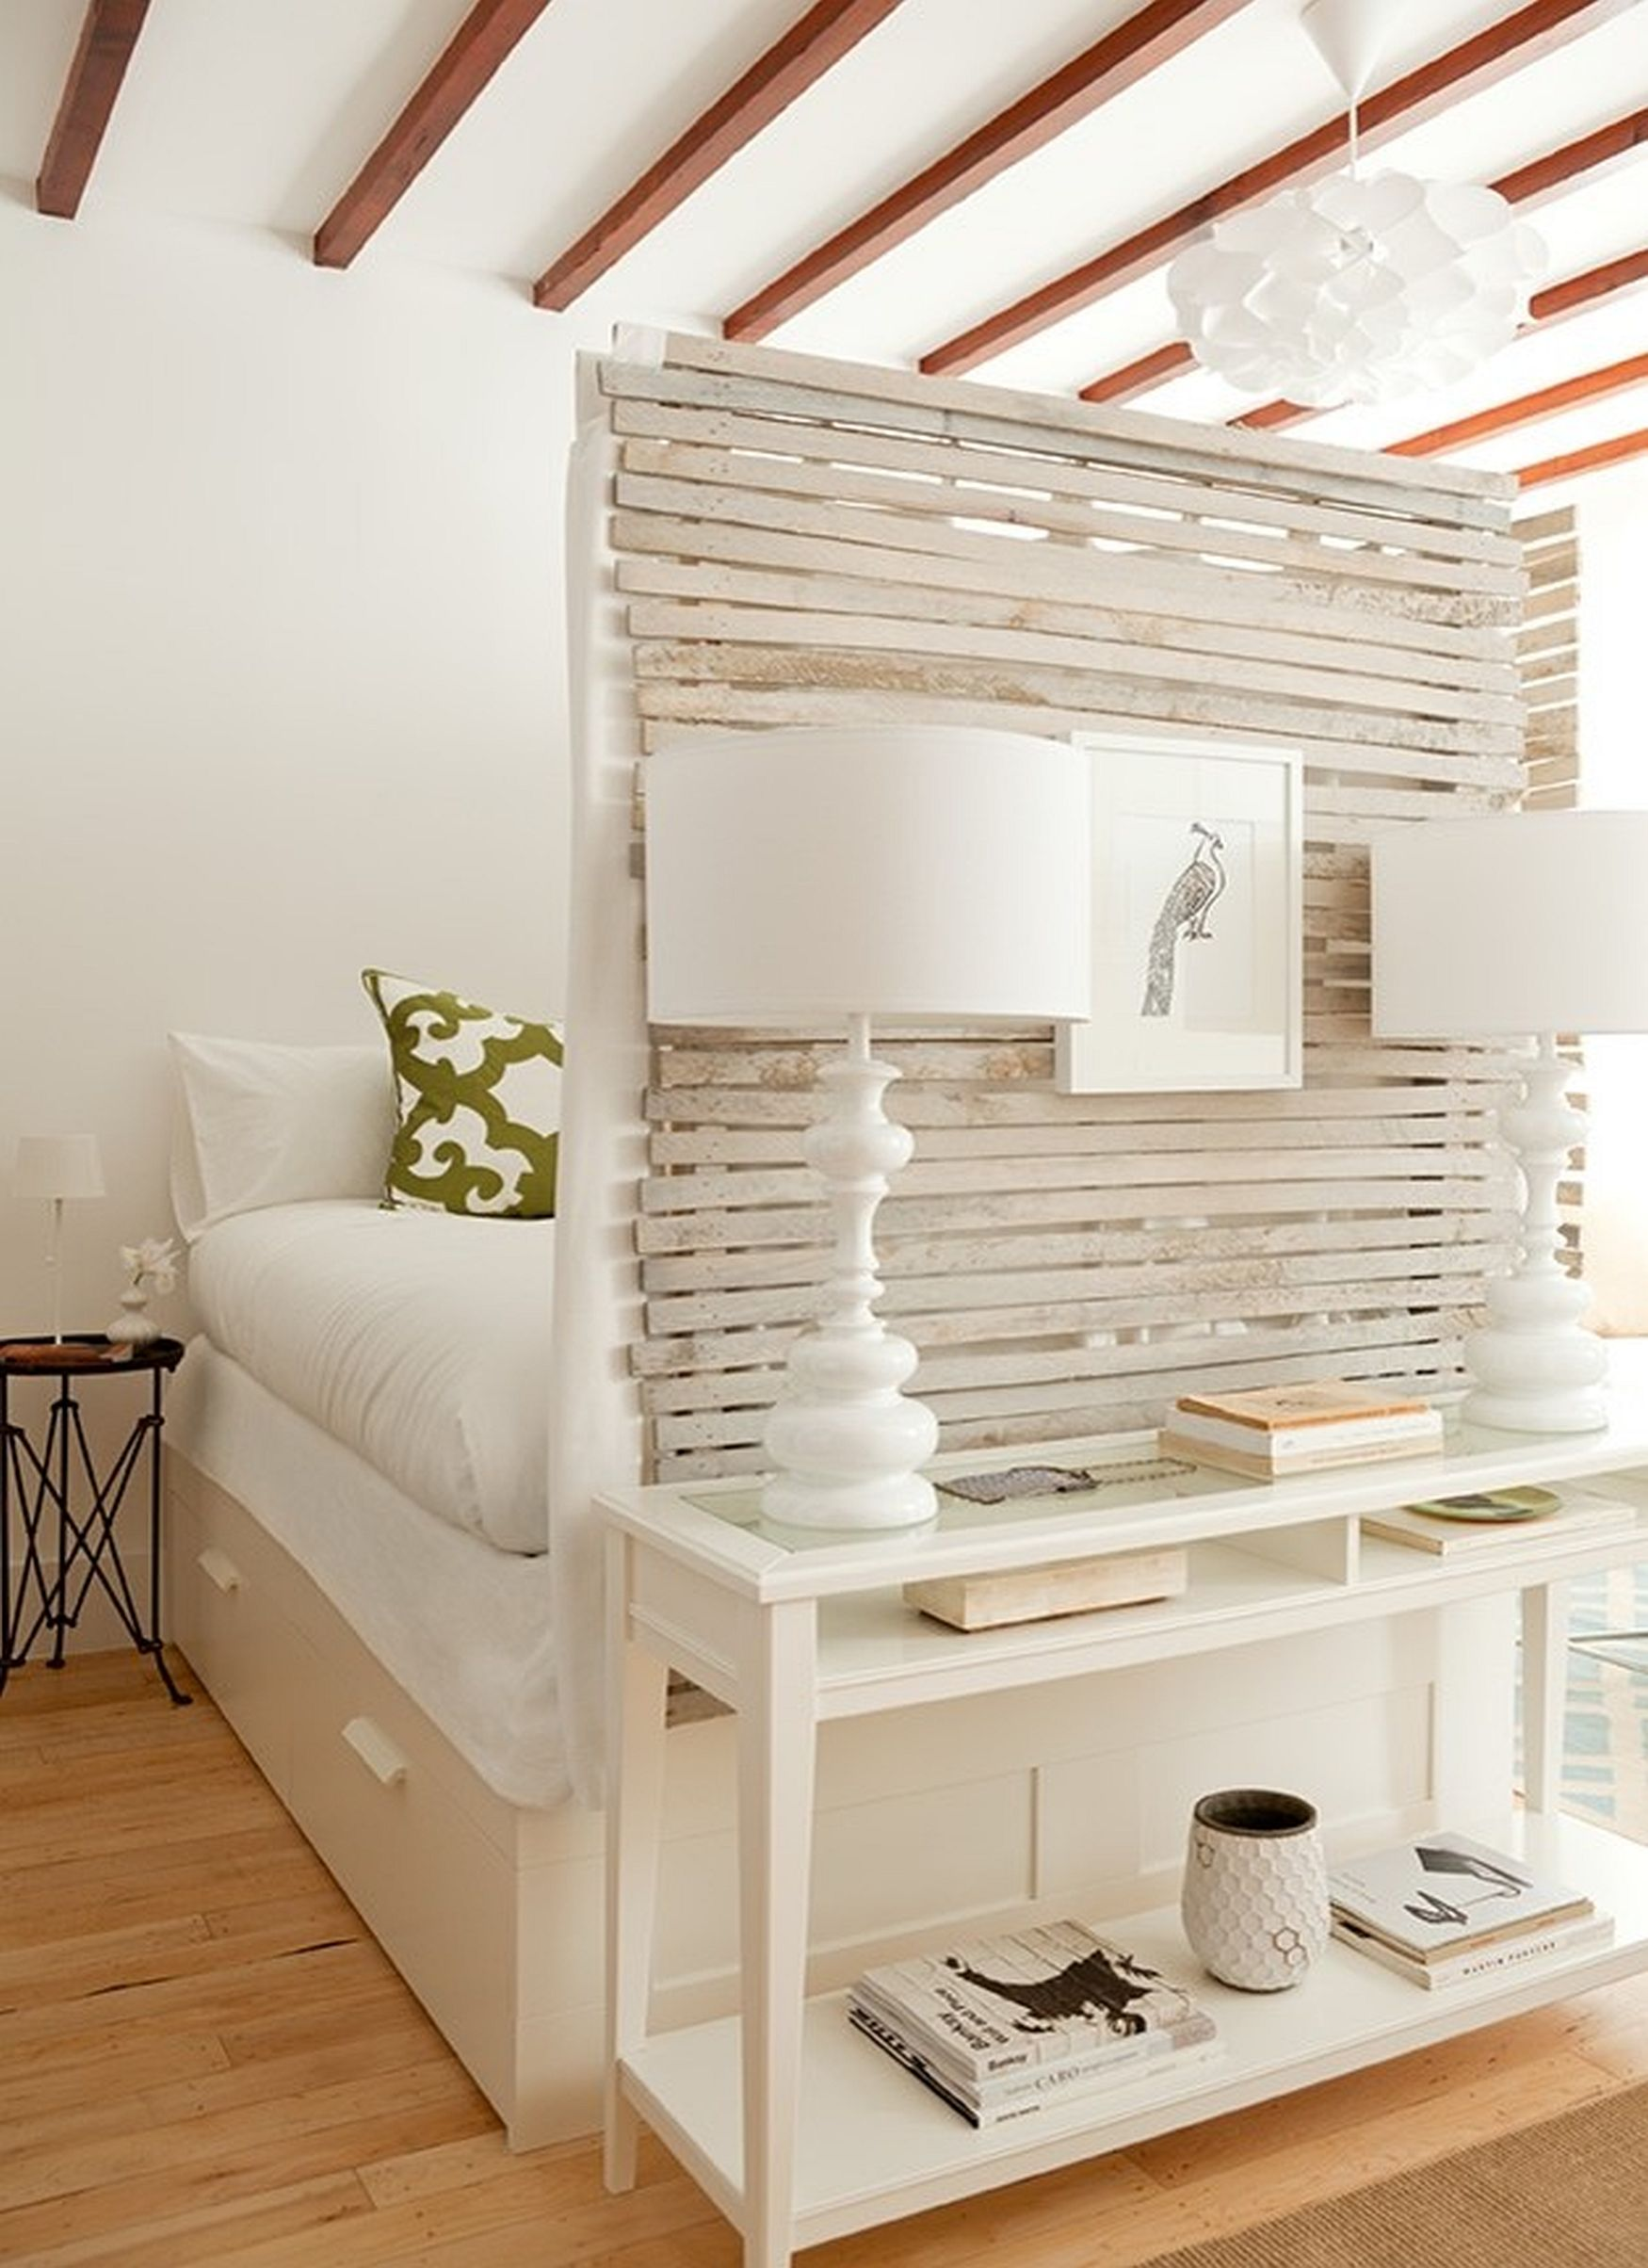 How To Divide A Bedroom 15 Creative Room Dividers For The Space Savvy And Trendy